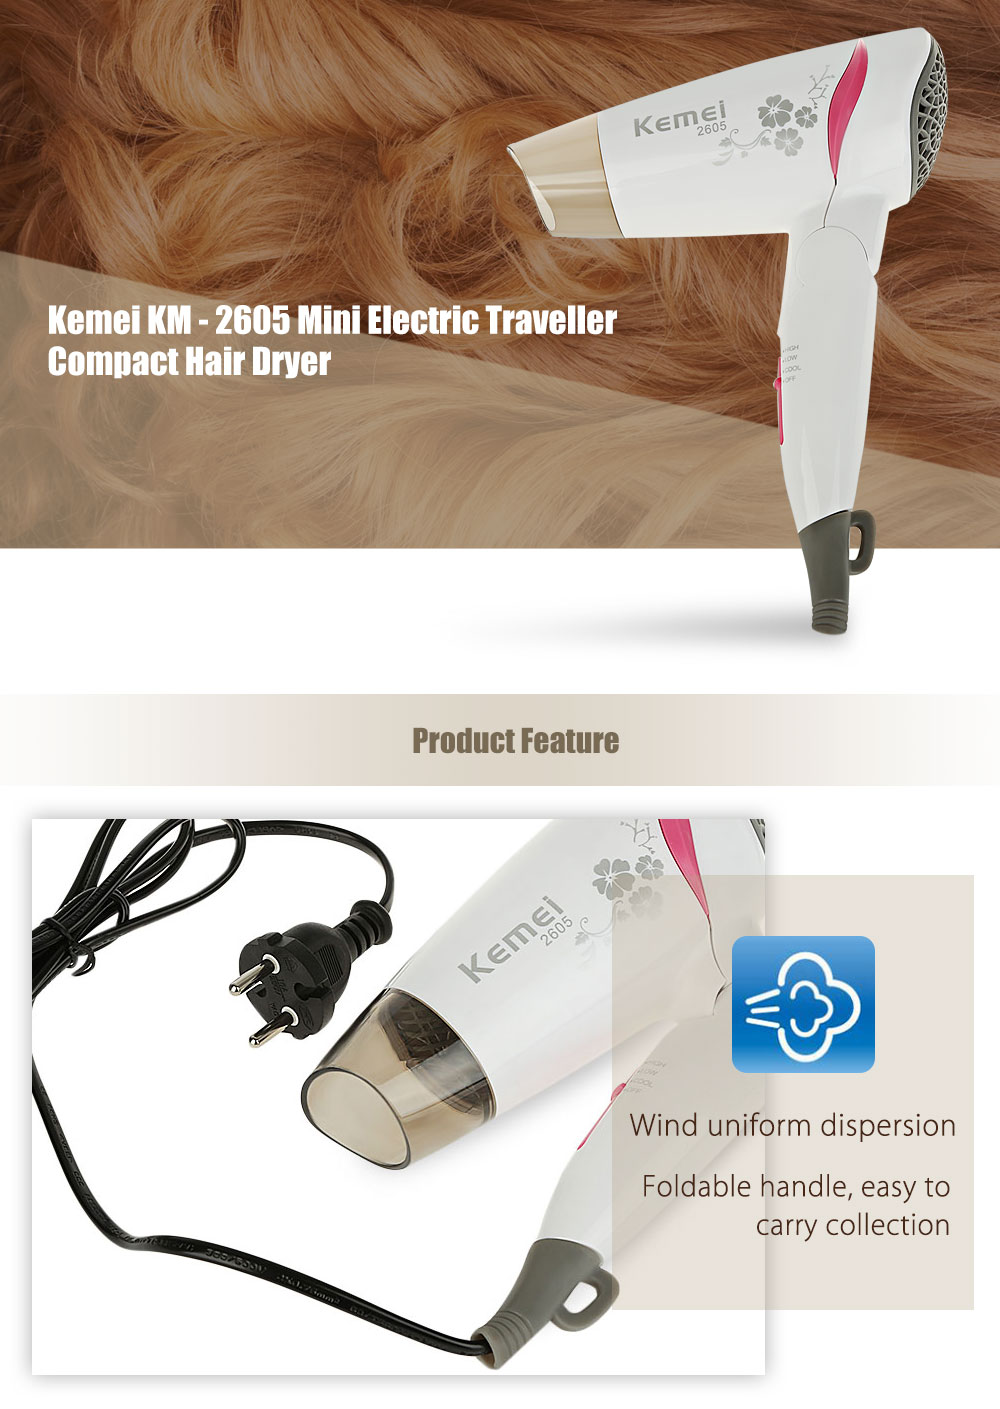 Kemei KM - 2605 Mini Household Electric Portable Traveller Compact Hair Dryer